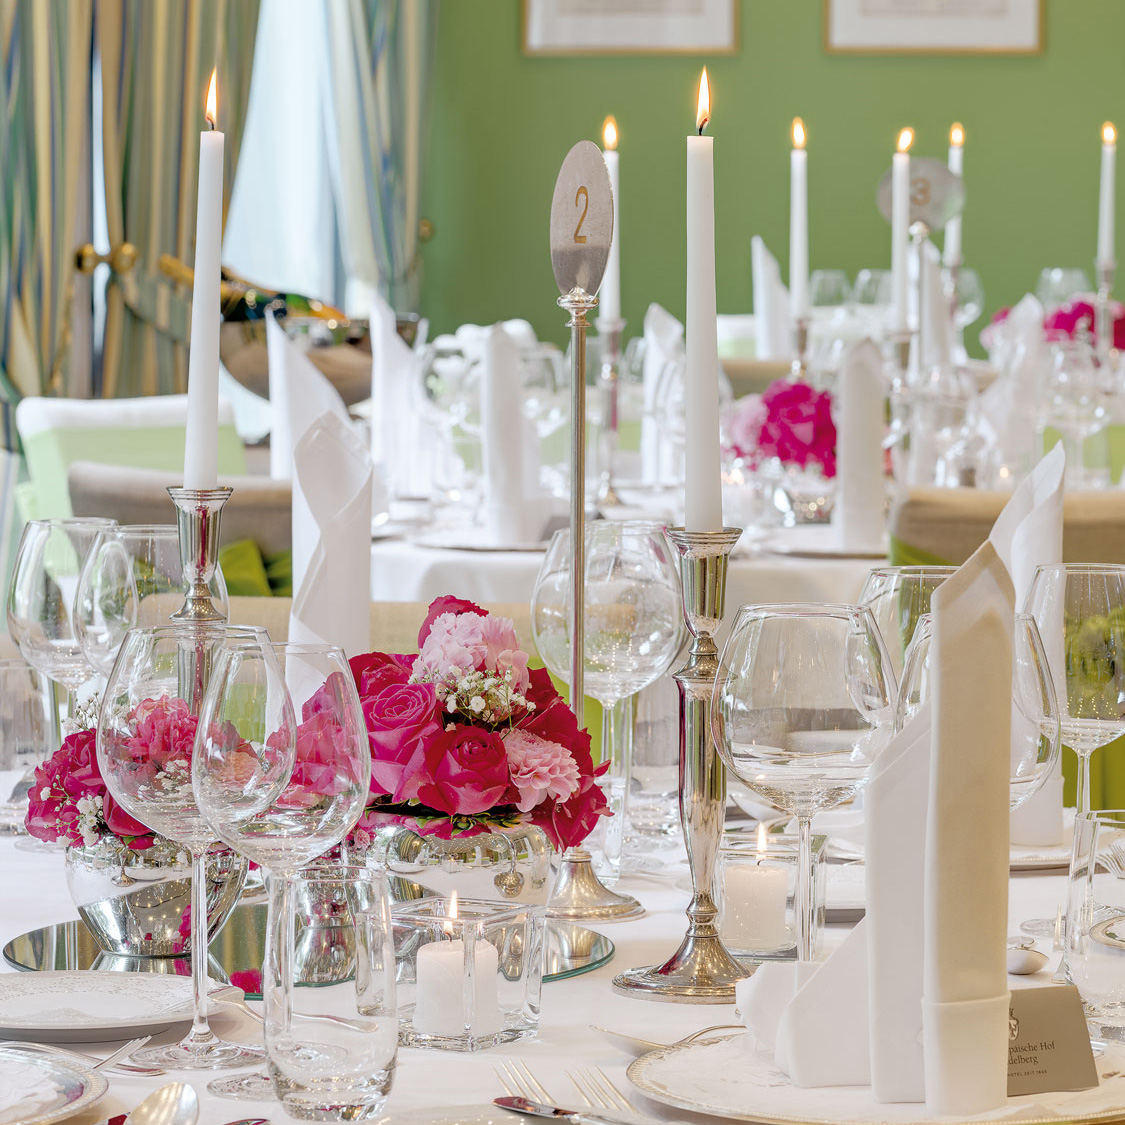 Weddings and private parties